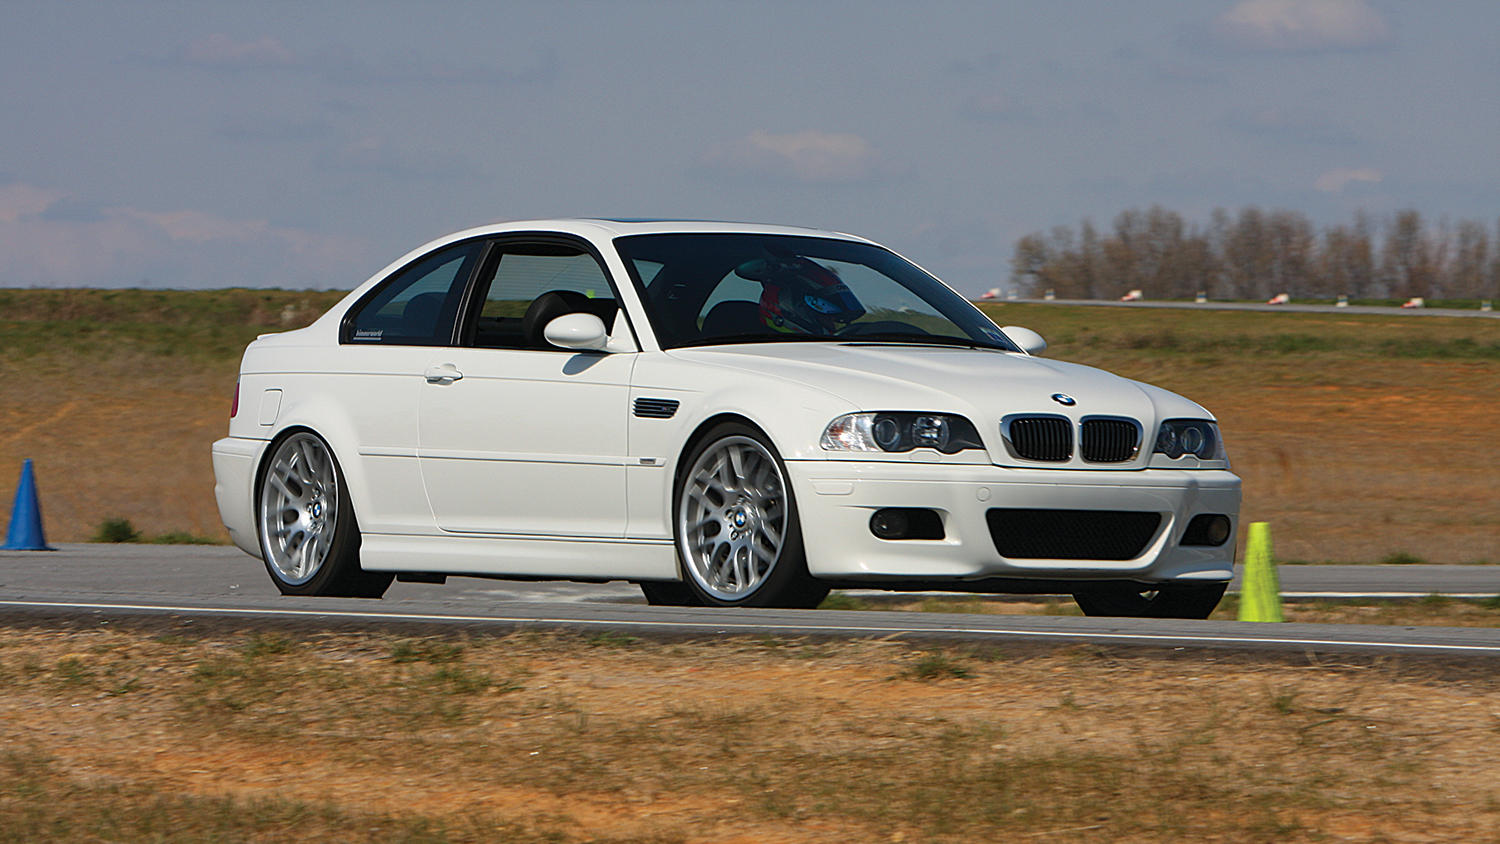 Buyers Guide E46 Chassis Bmw M3 Articles Grassroots Motorsports